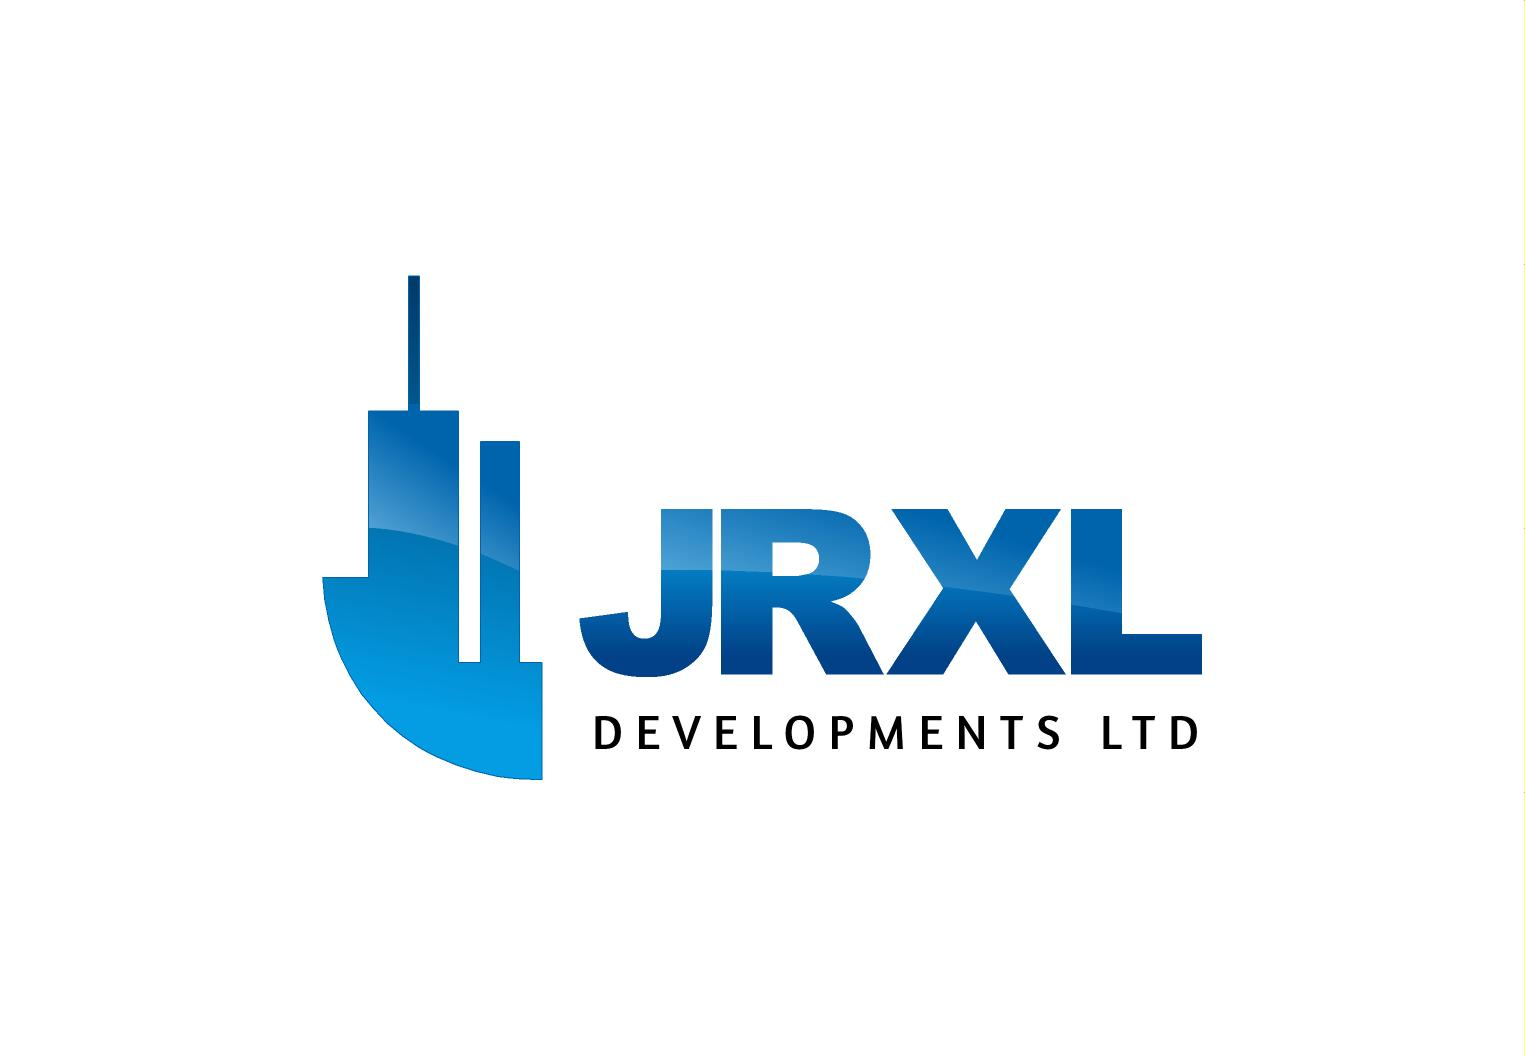 Logo Design by ZAYYADI AHMAD - Entry No. 79 in the Logo Design Contest JRXL DEVELOPMENTS LTD Logo Design.